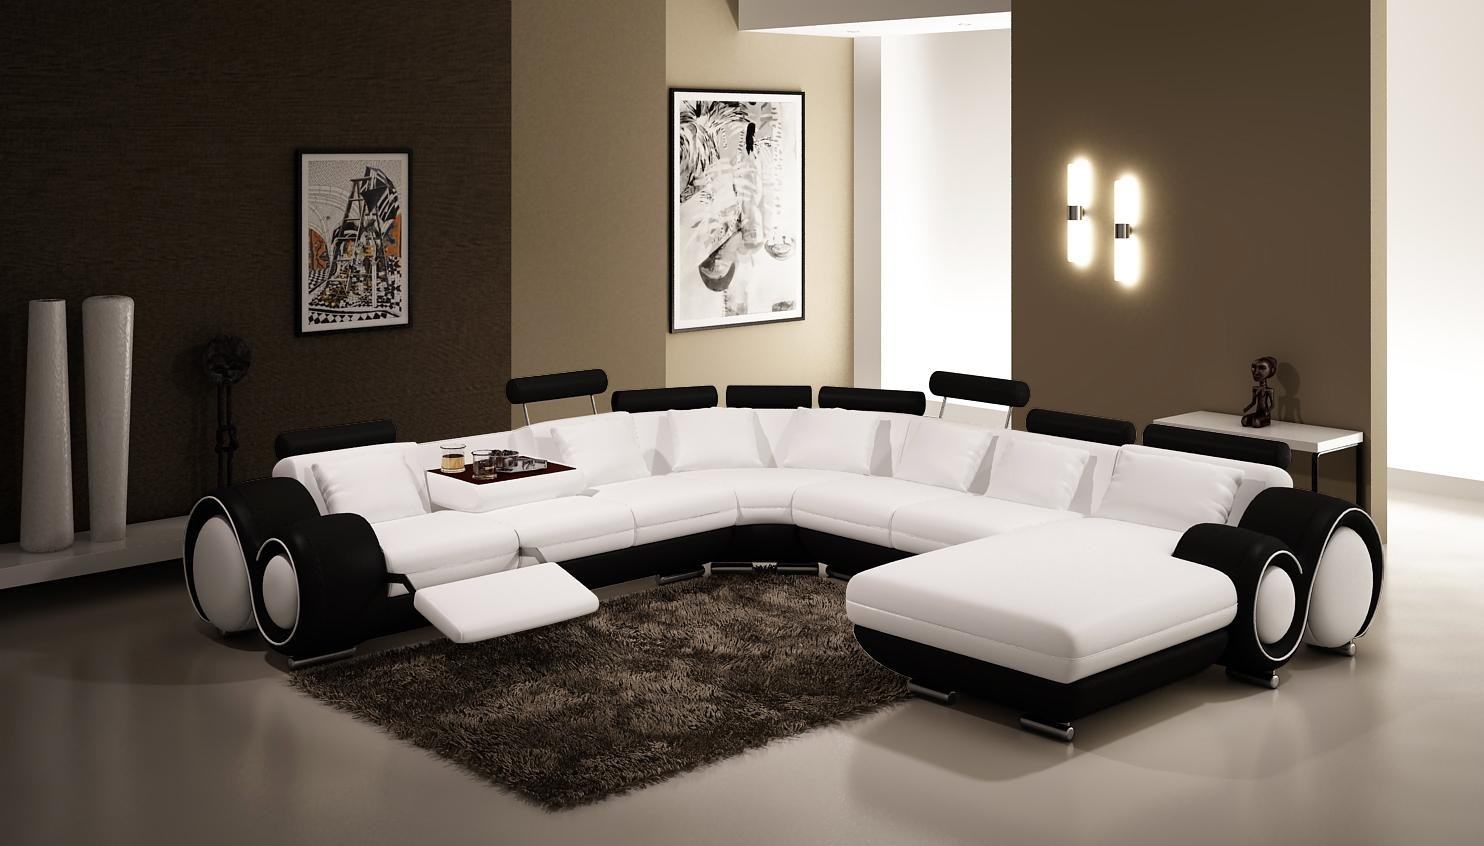 Vig Furniture 4084 Contemporary Black And White Leather Sectional Sofa With Regard To Black And White Sectional Sofa (Image 13 of 15)